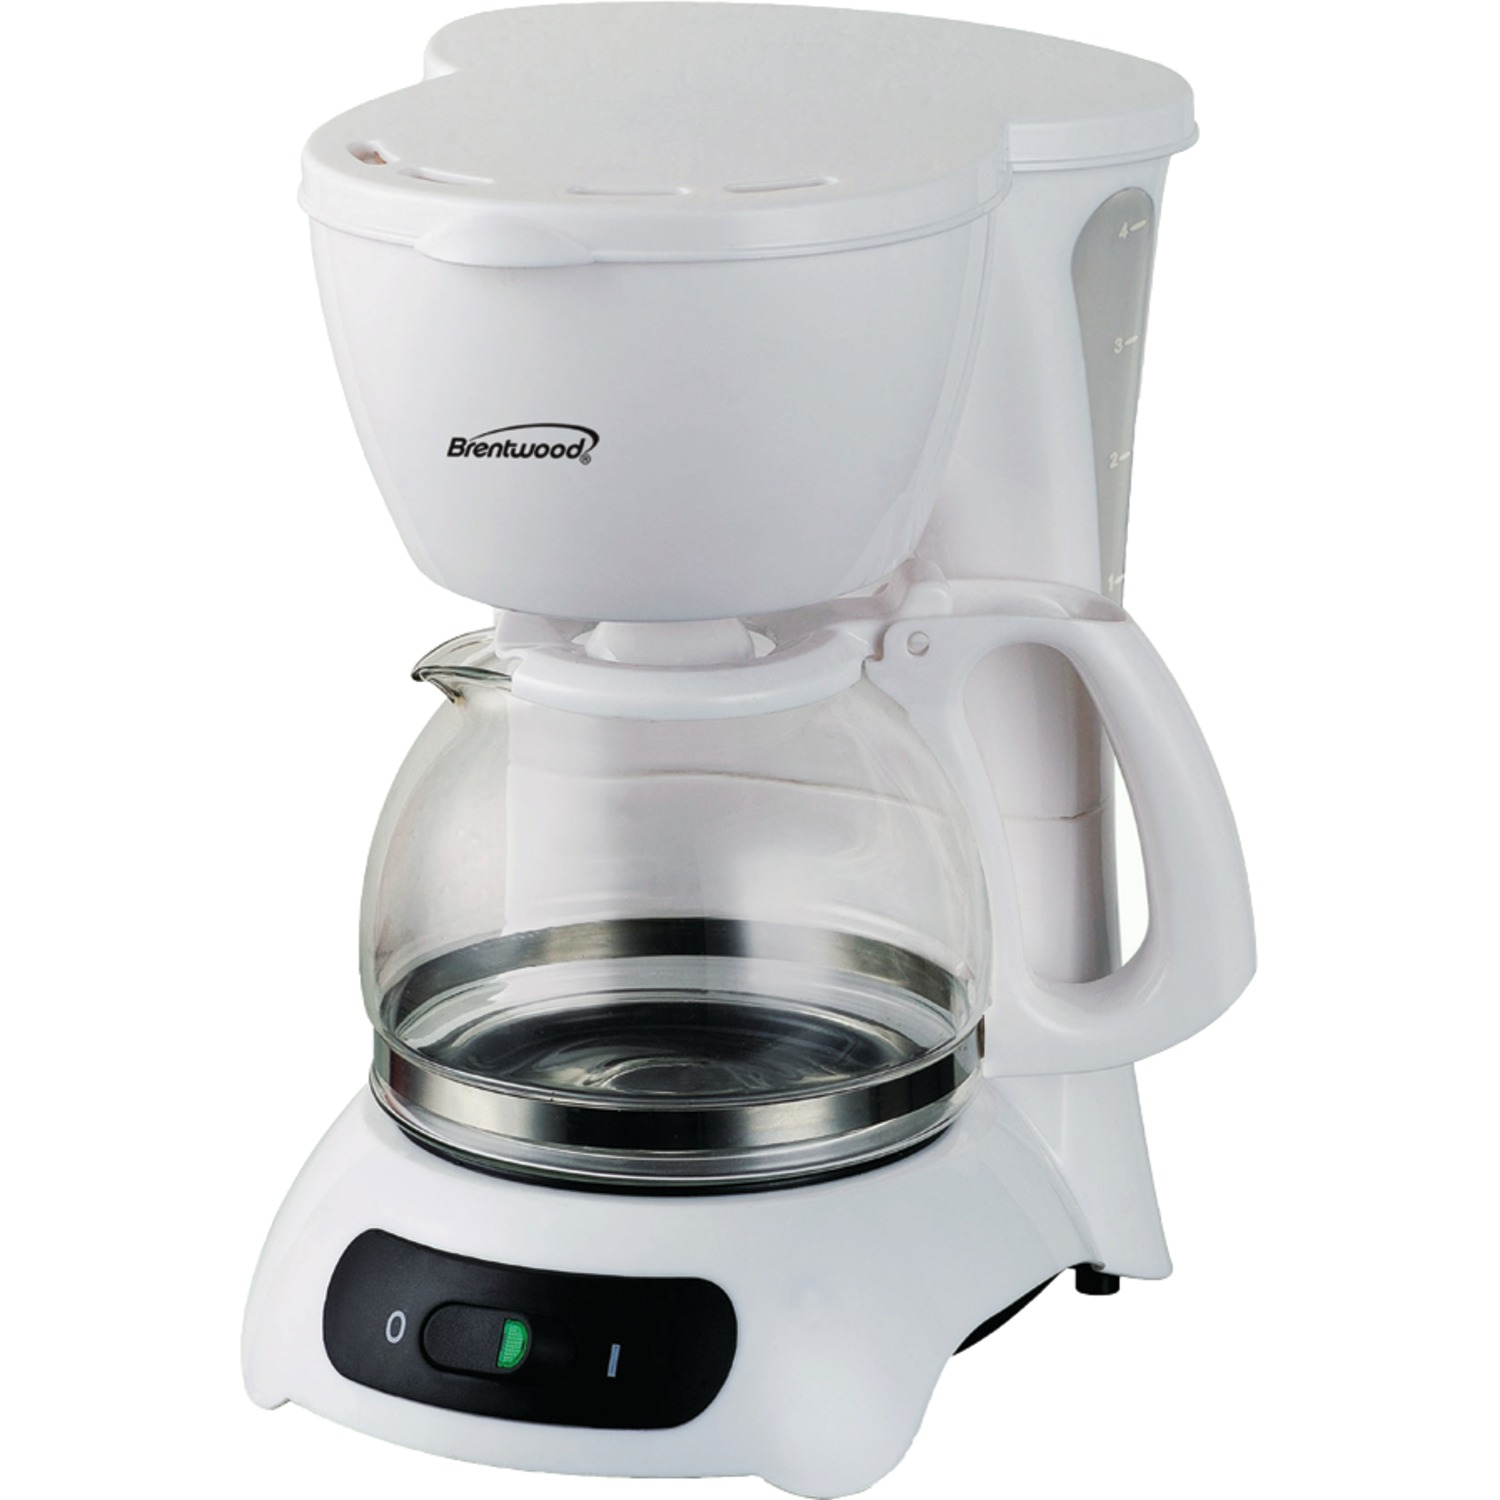 Coffee Maker Oxone 212 : BRENTWOOD TS-212 4-Cup Coffee Maker